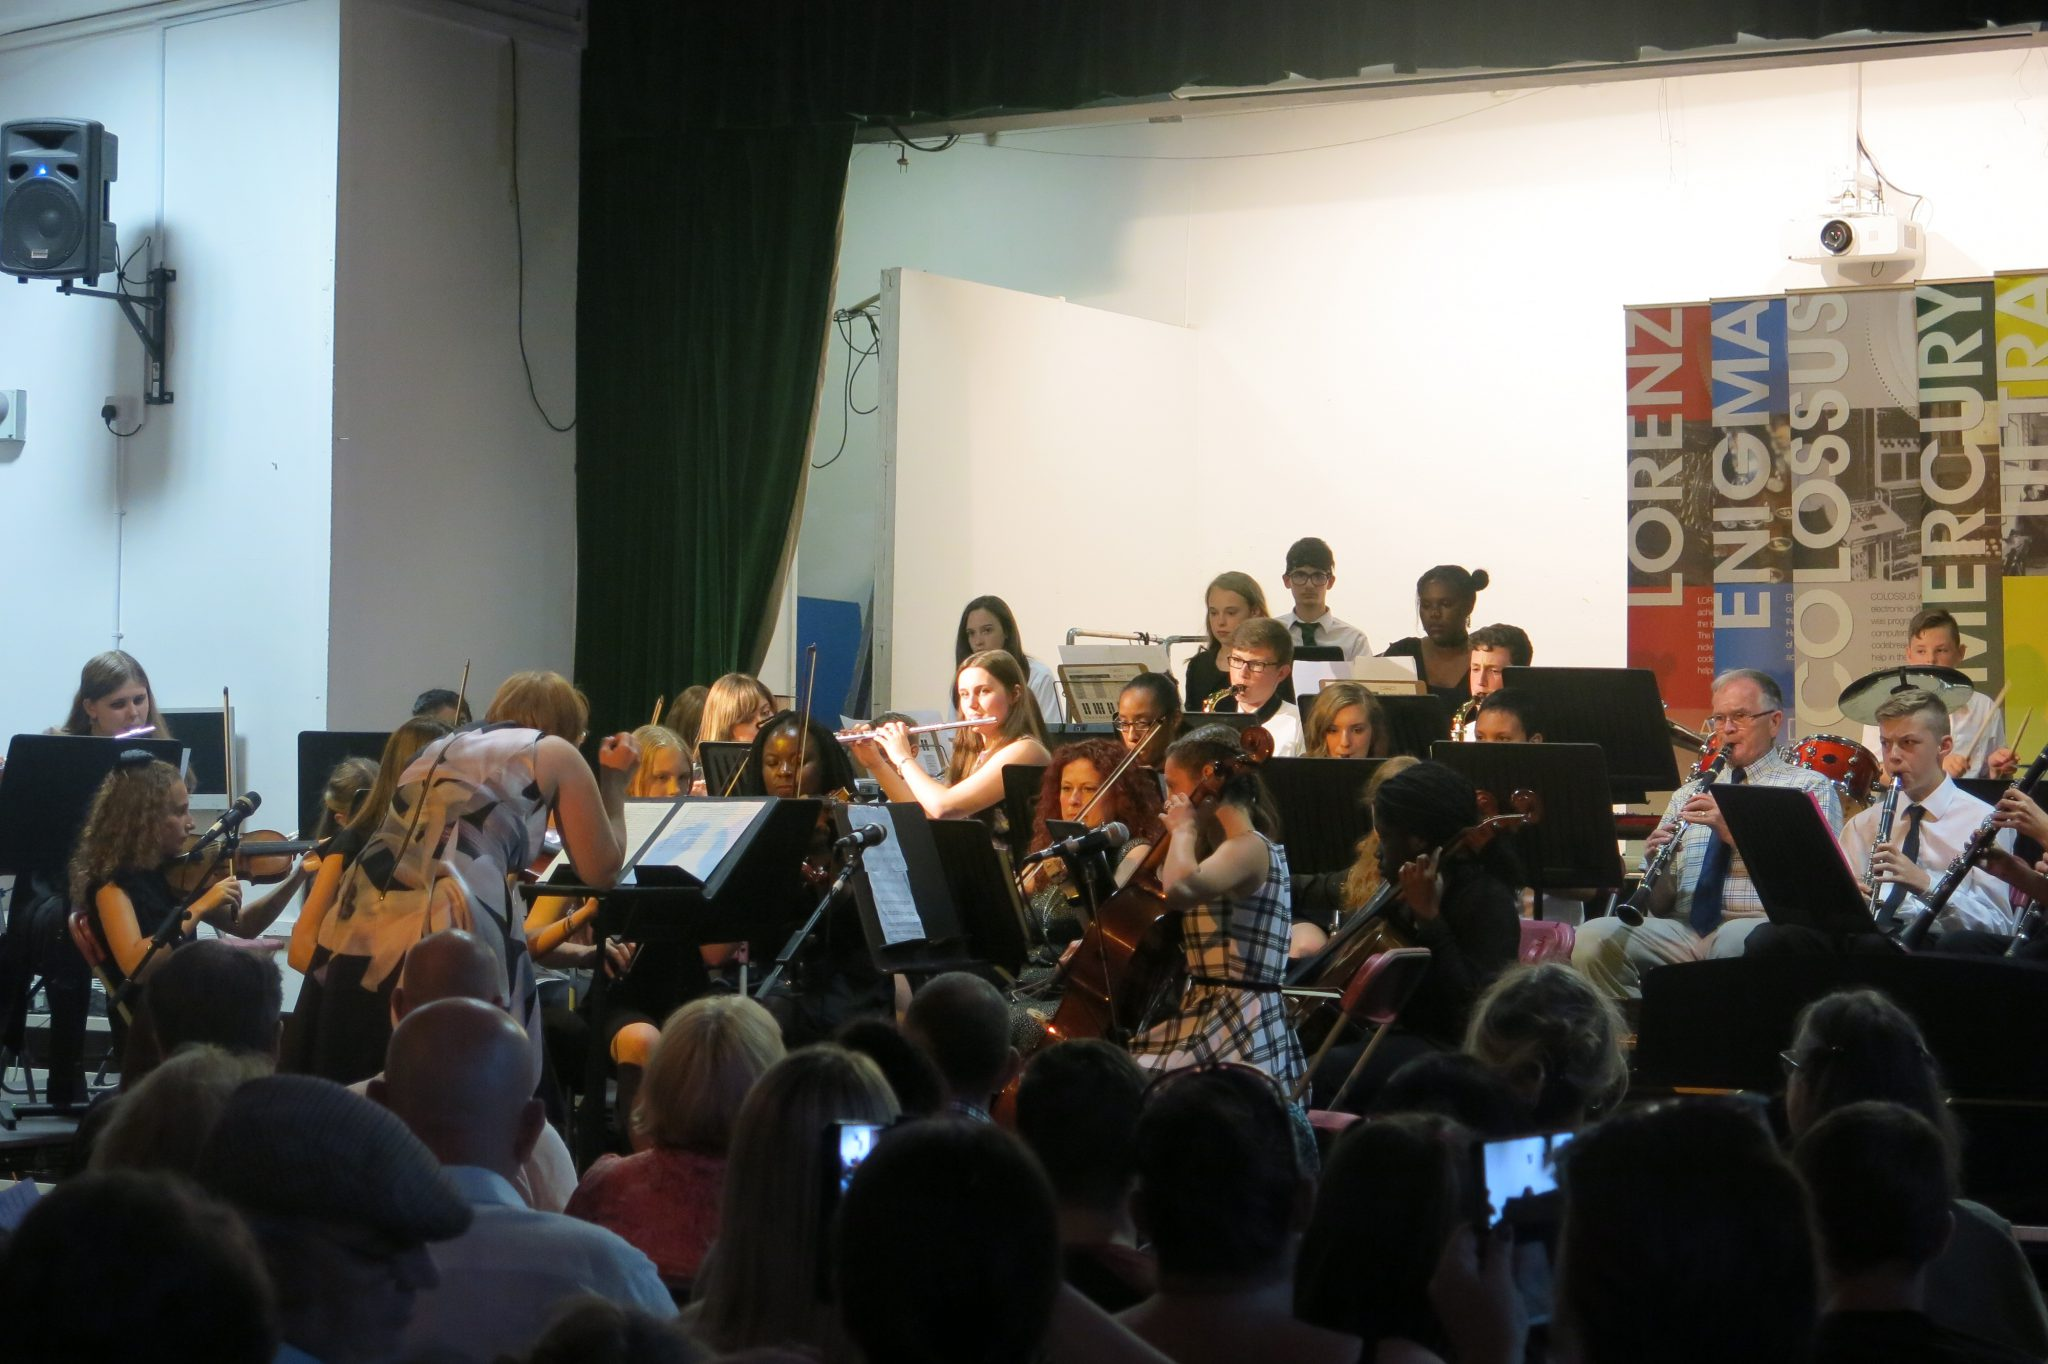 Lord Grey Academy Orchestra at the Music Concert